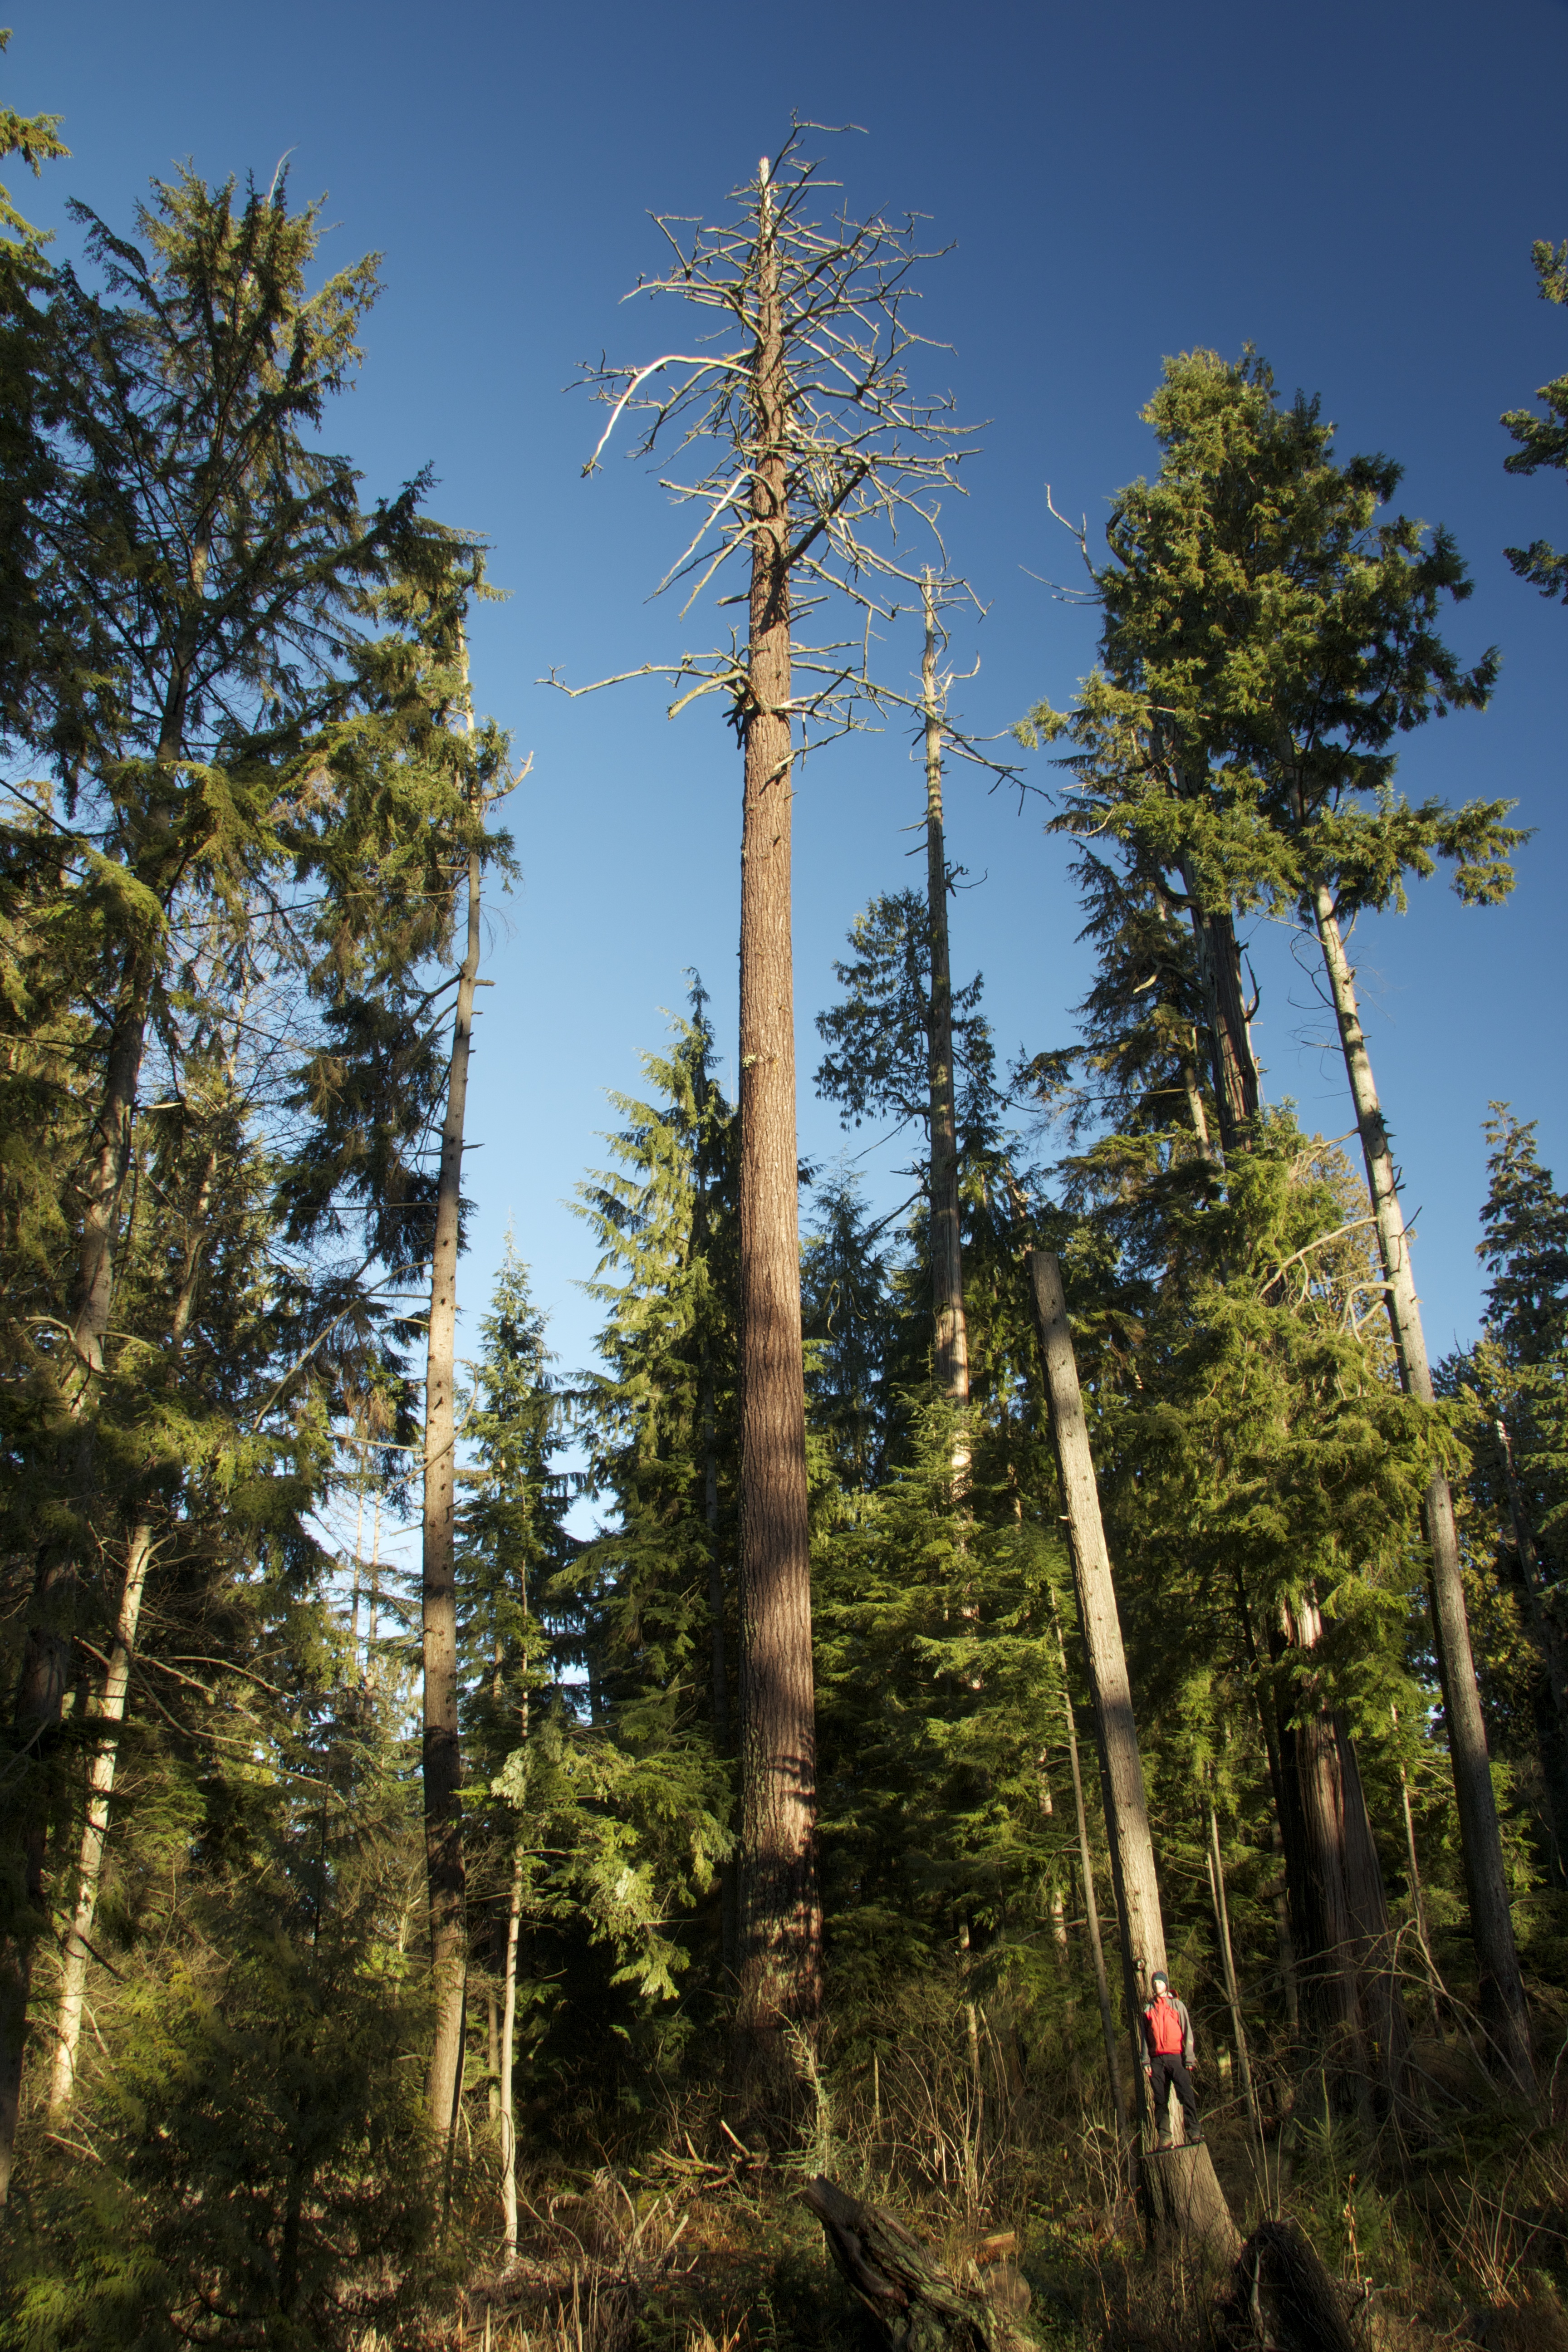 The Stanley Park Forest Vancouver Big Tree Hiking Guide